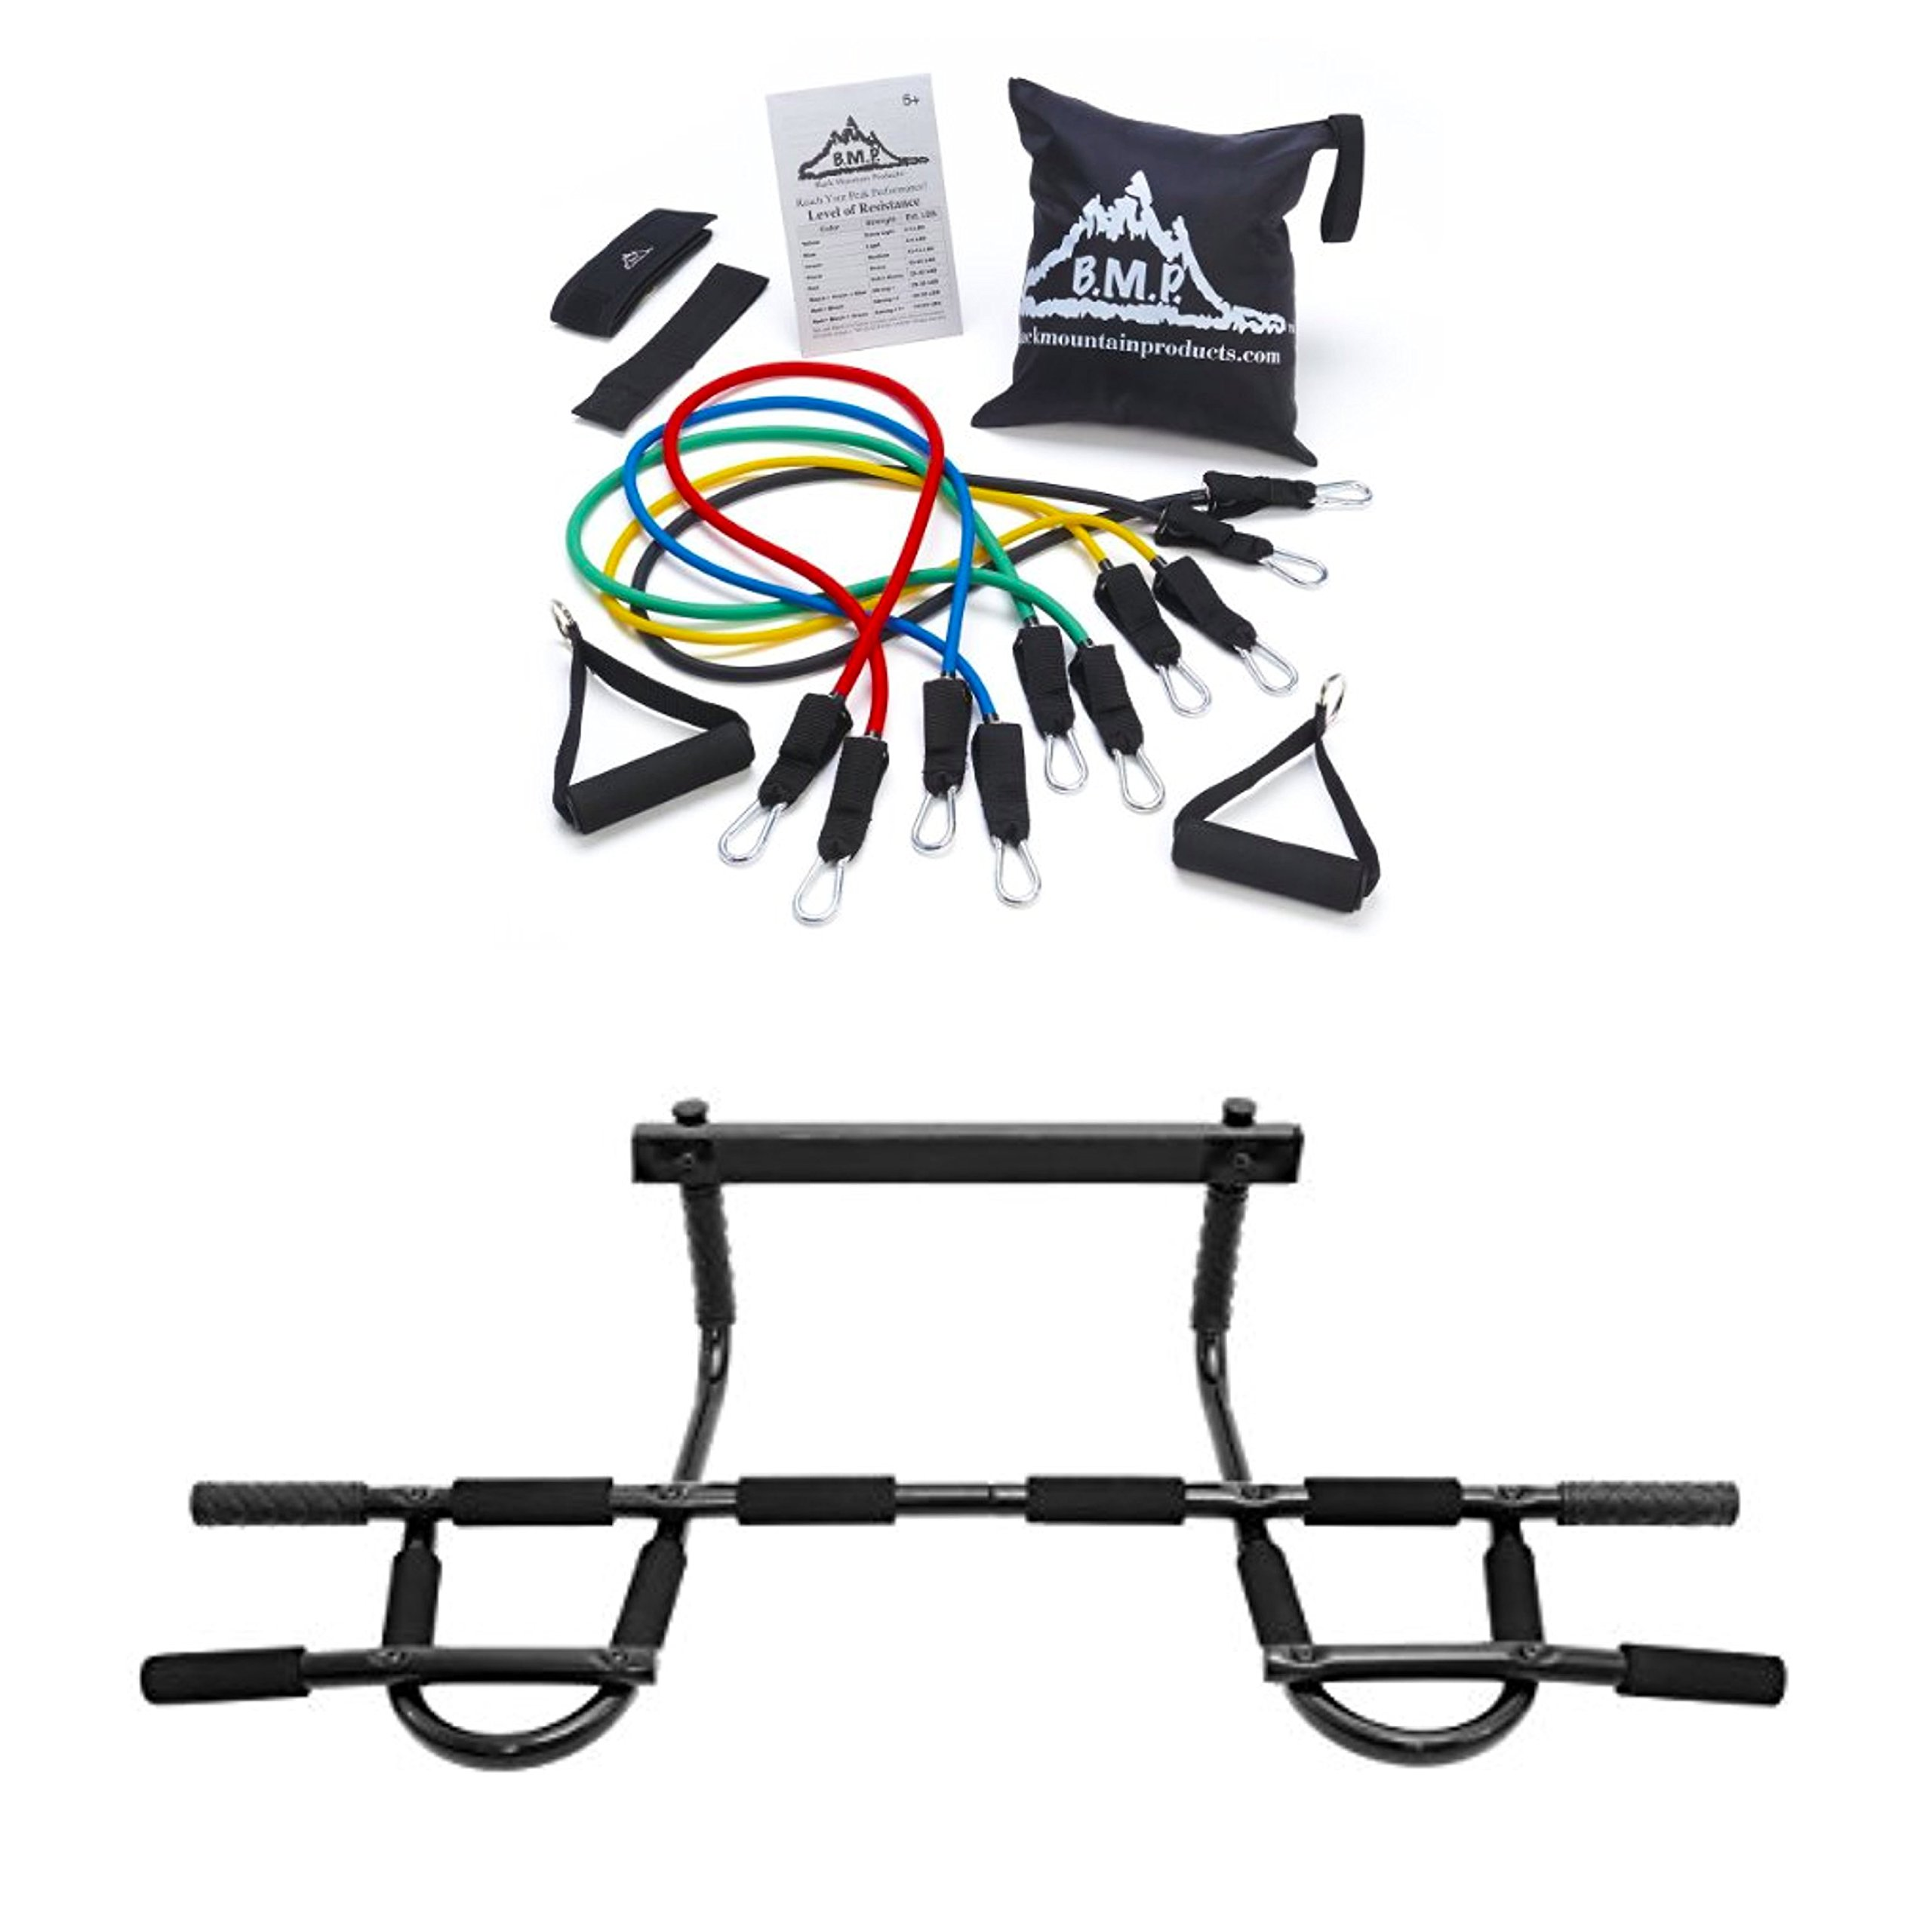 Bundle Includes 2 Items - Black Mountain Products Resistance Band Set with Door Anchor, Ankle Strap, Exercise Chart, and Resistance Band and ProSource Multi-Grip Chin-Up/Pull-Up Bar, Heavy Duty